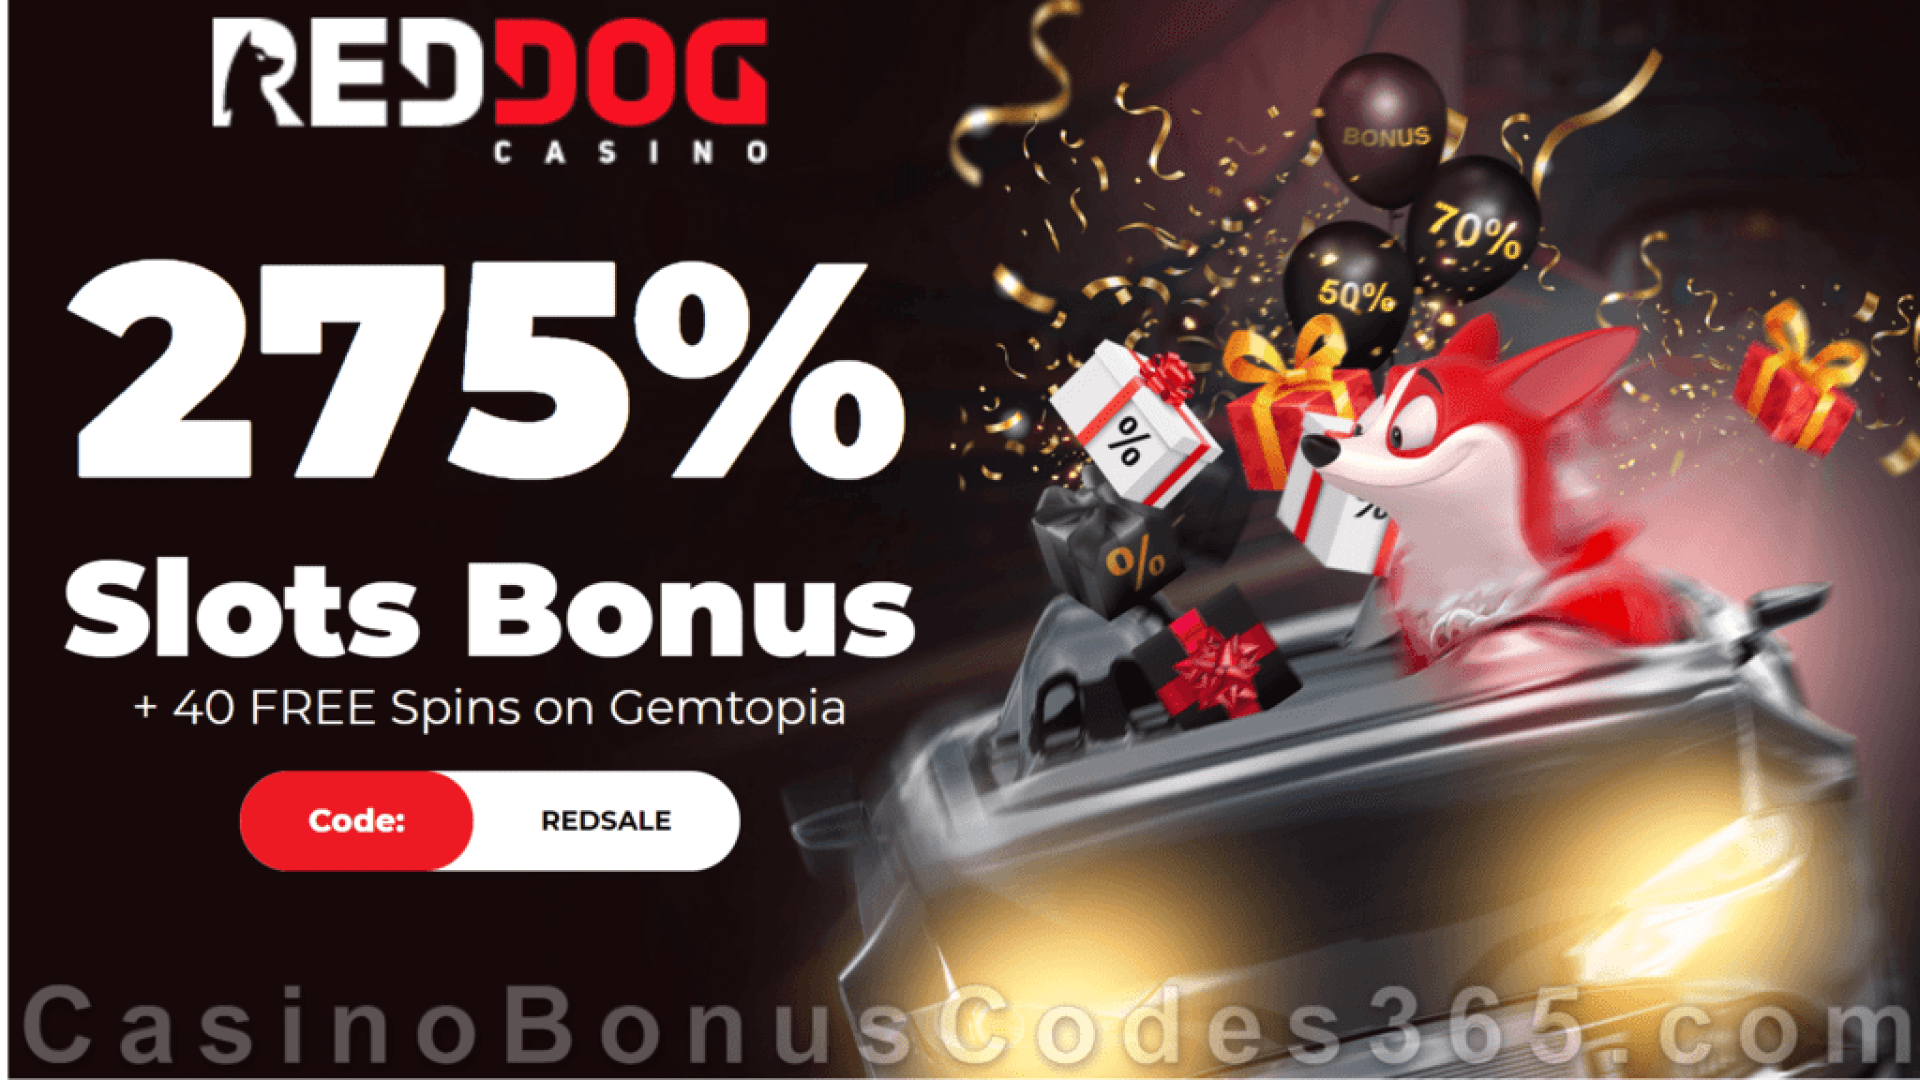 Red Dog Casino Special Black Friday 275% Match plus 20 FREE RTG Gemtopia Spins Sign Up Offer